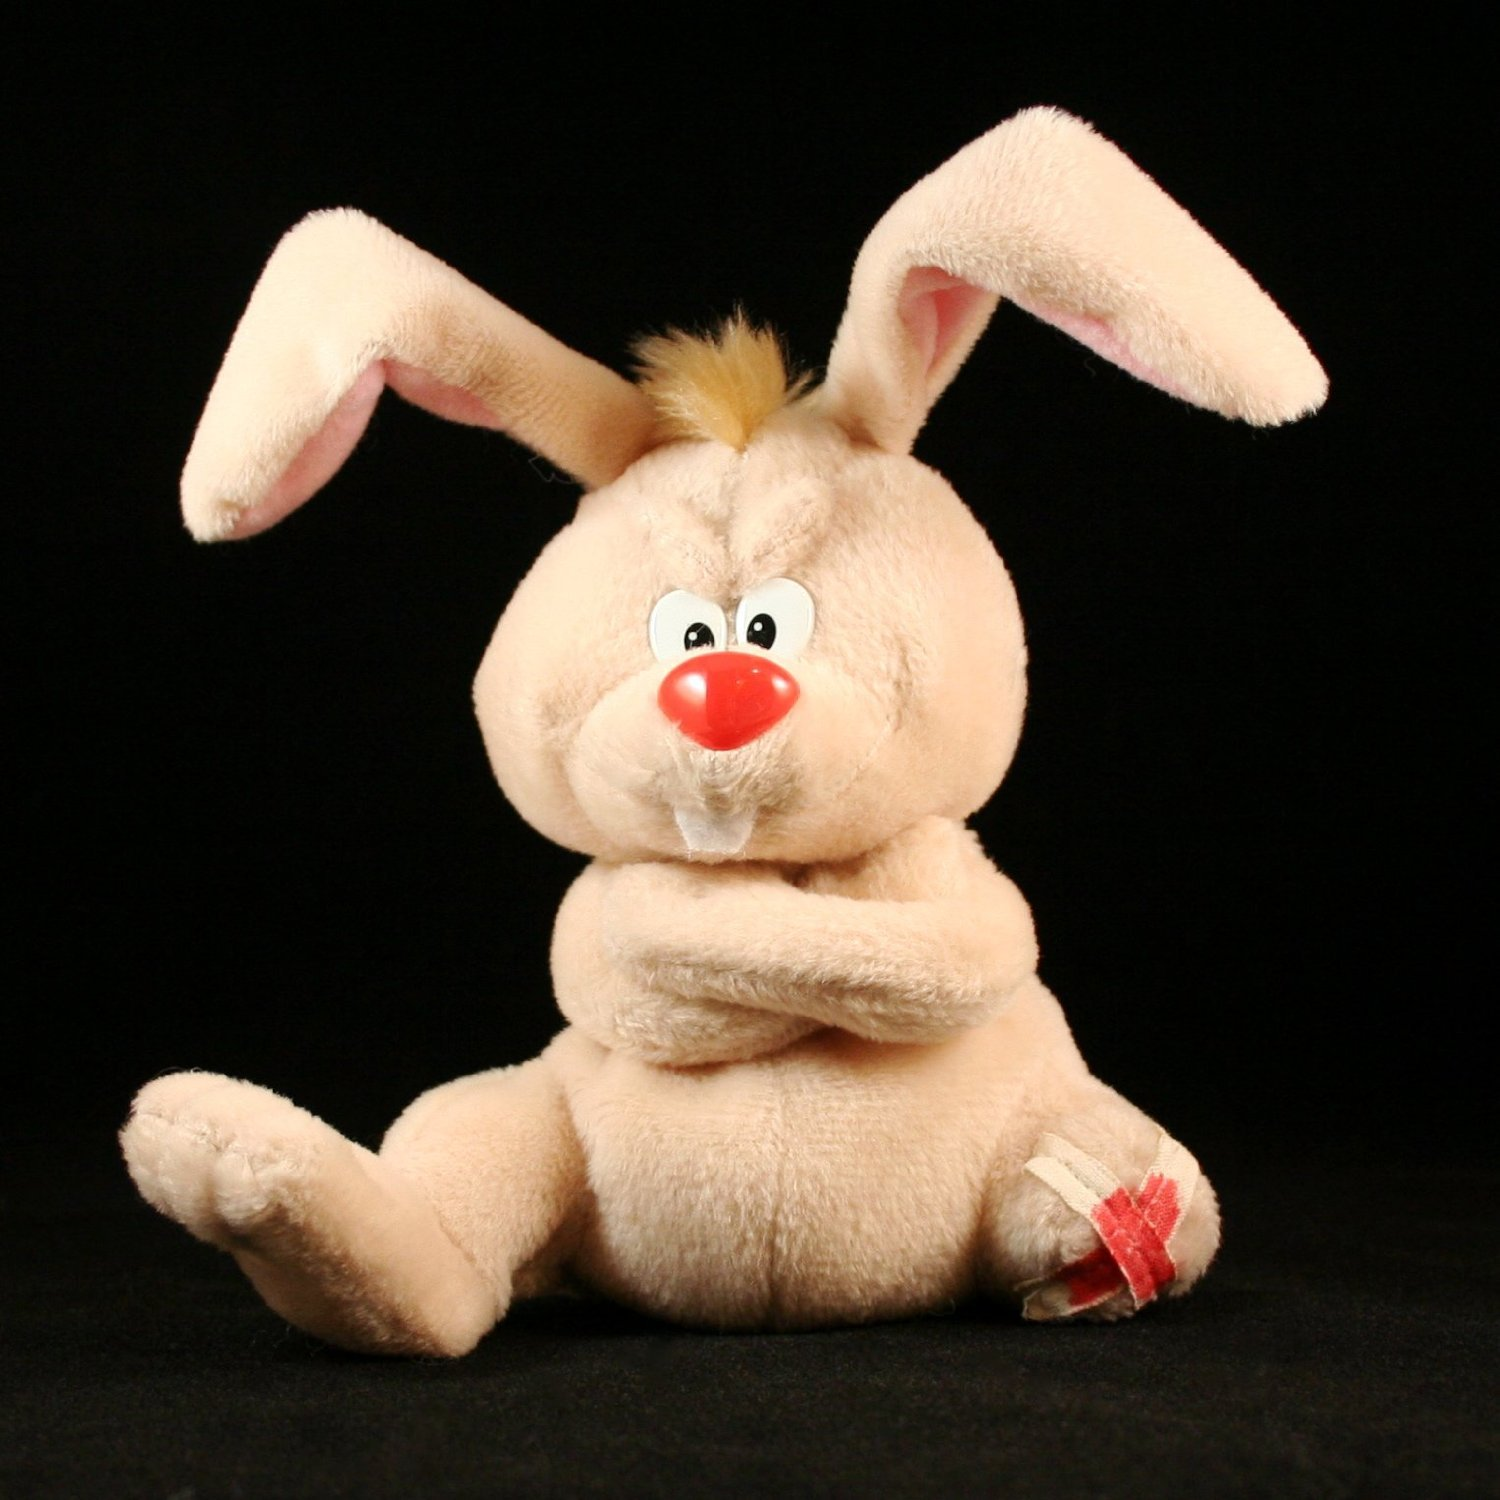 Meanies Lucky The Rabbit Series 2 Bean Bag Plush Toy from The Idea Factory